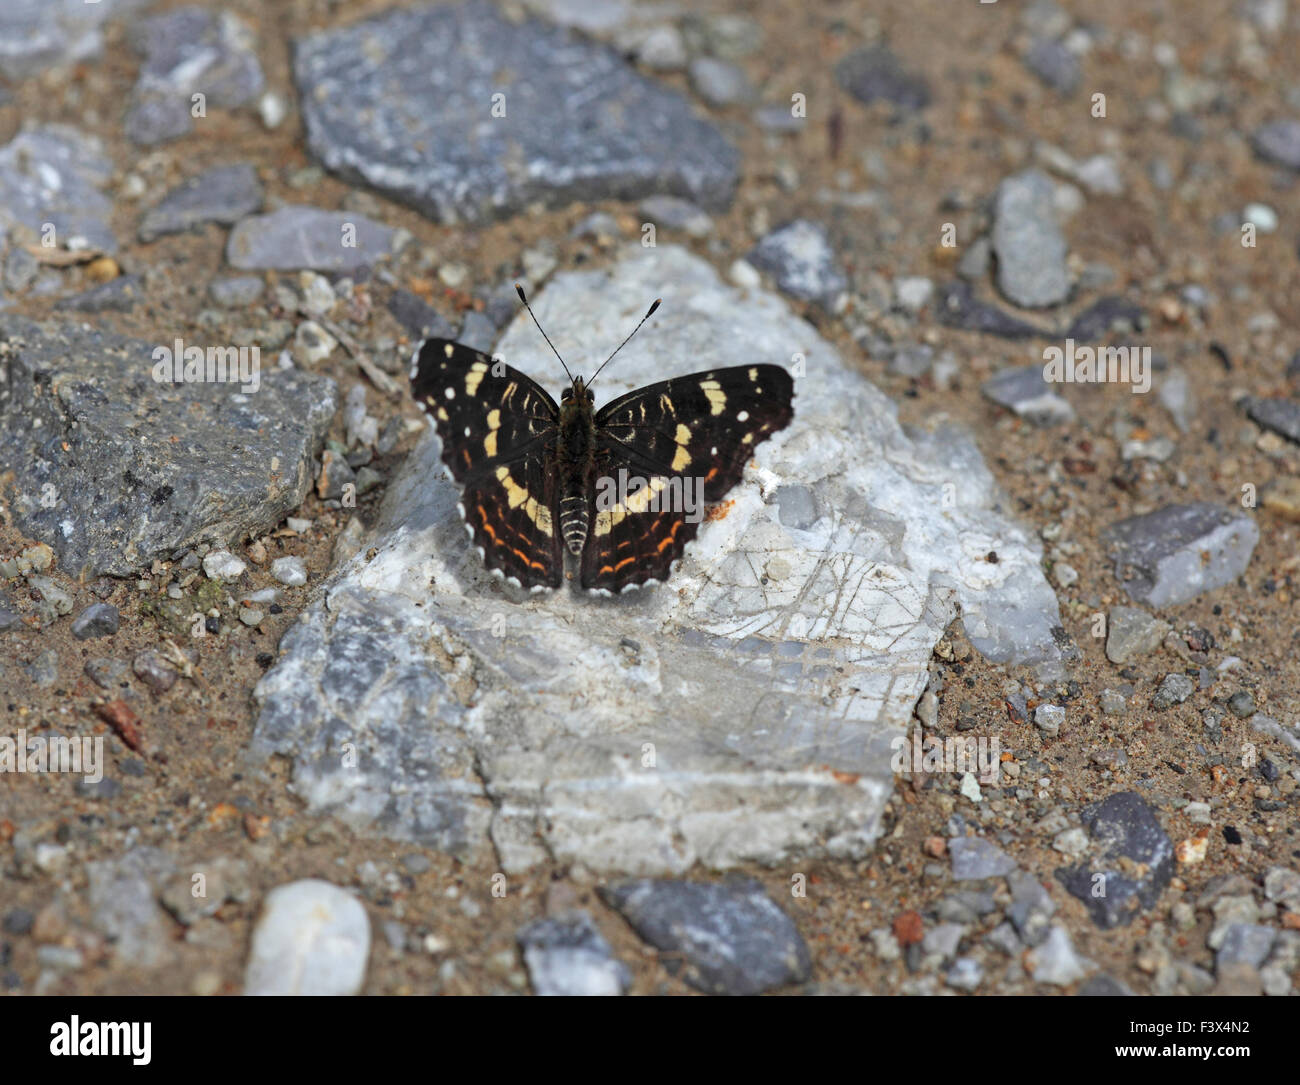 At rest on rock second brood Hungary June 2015 - Stock Image